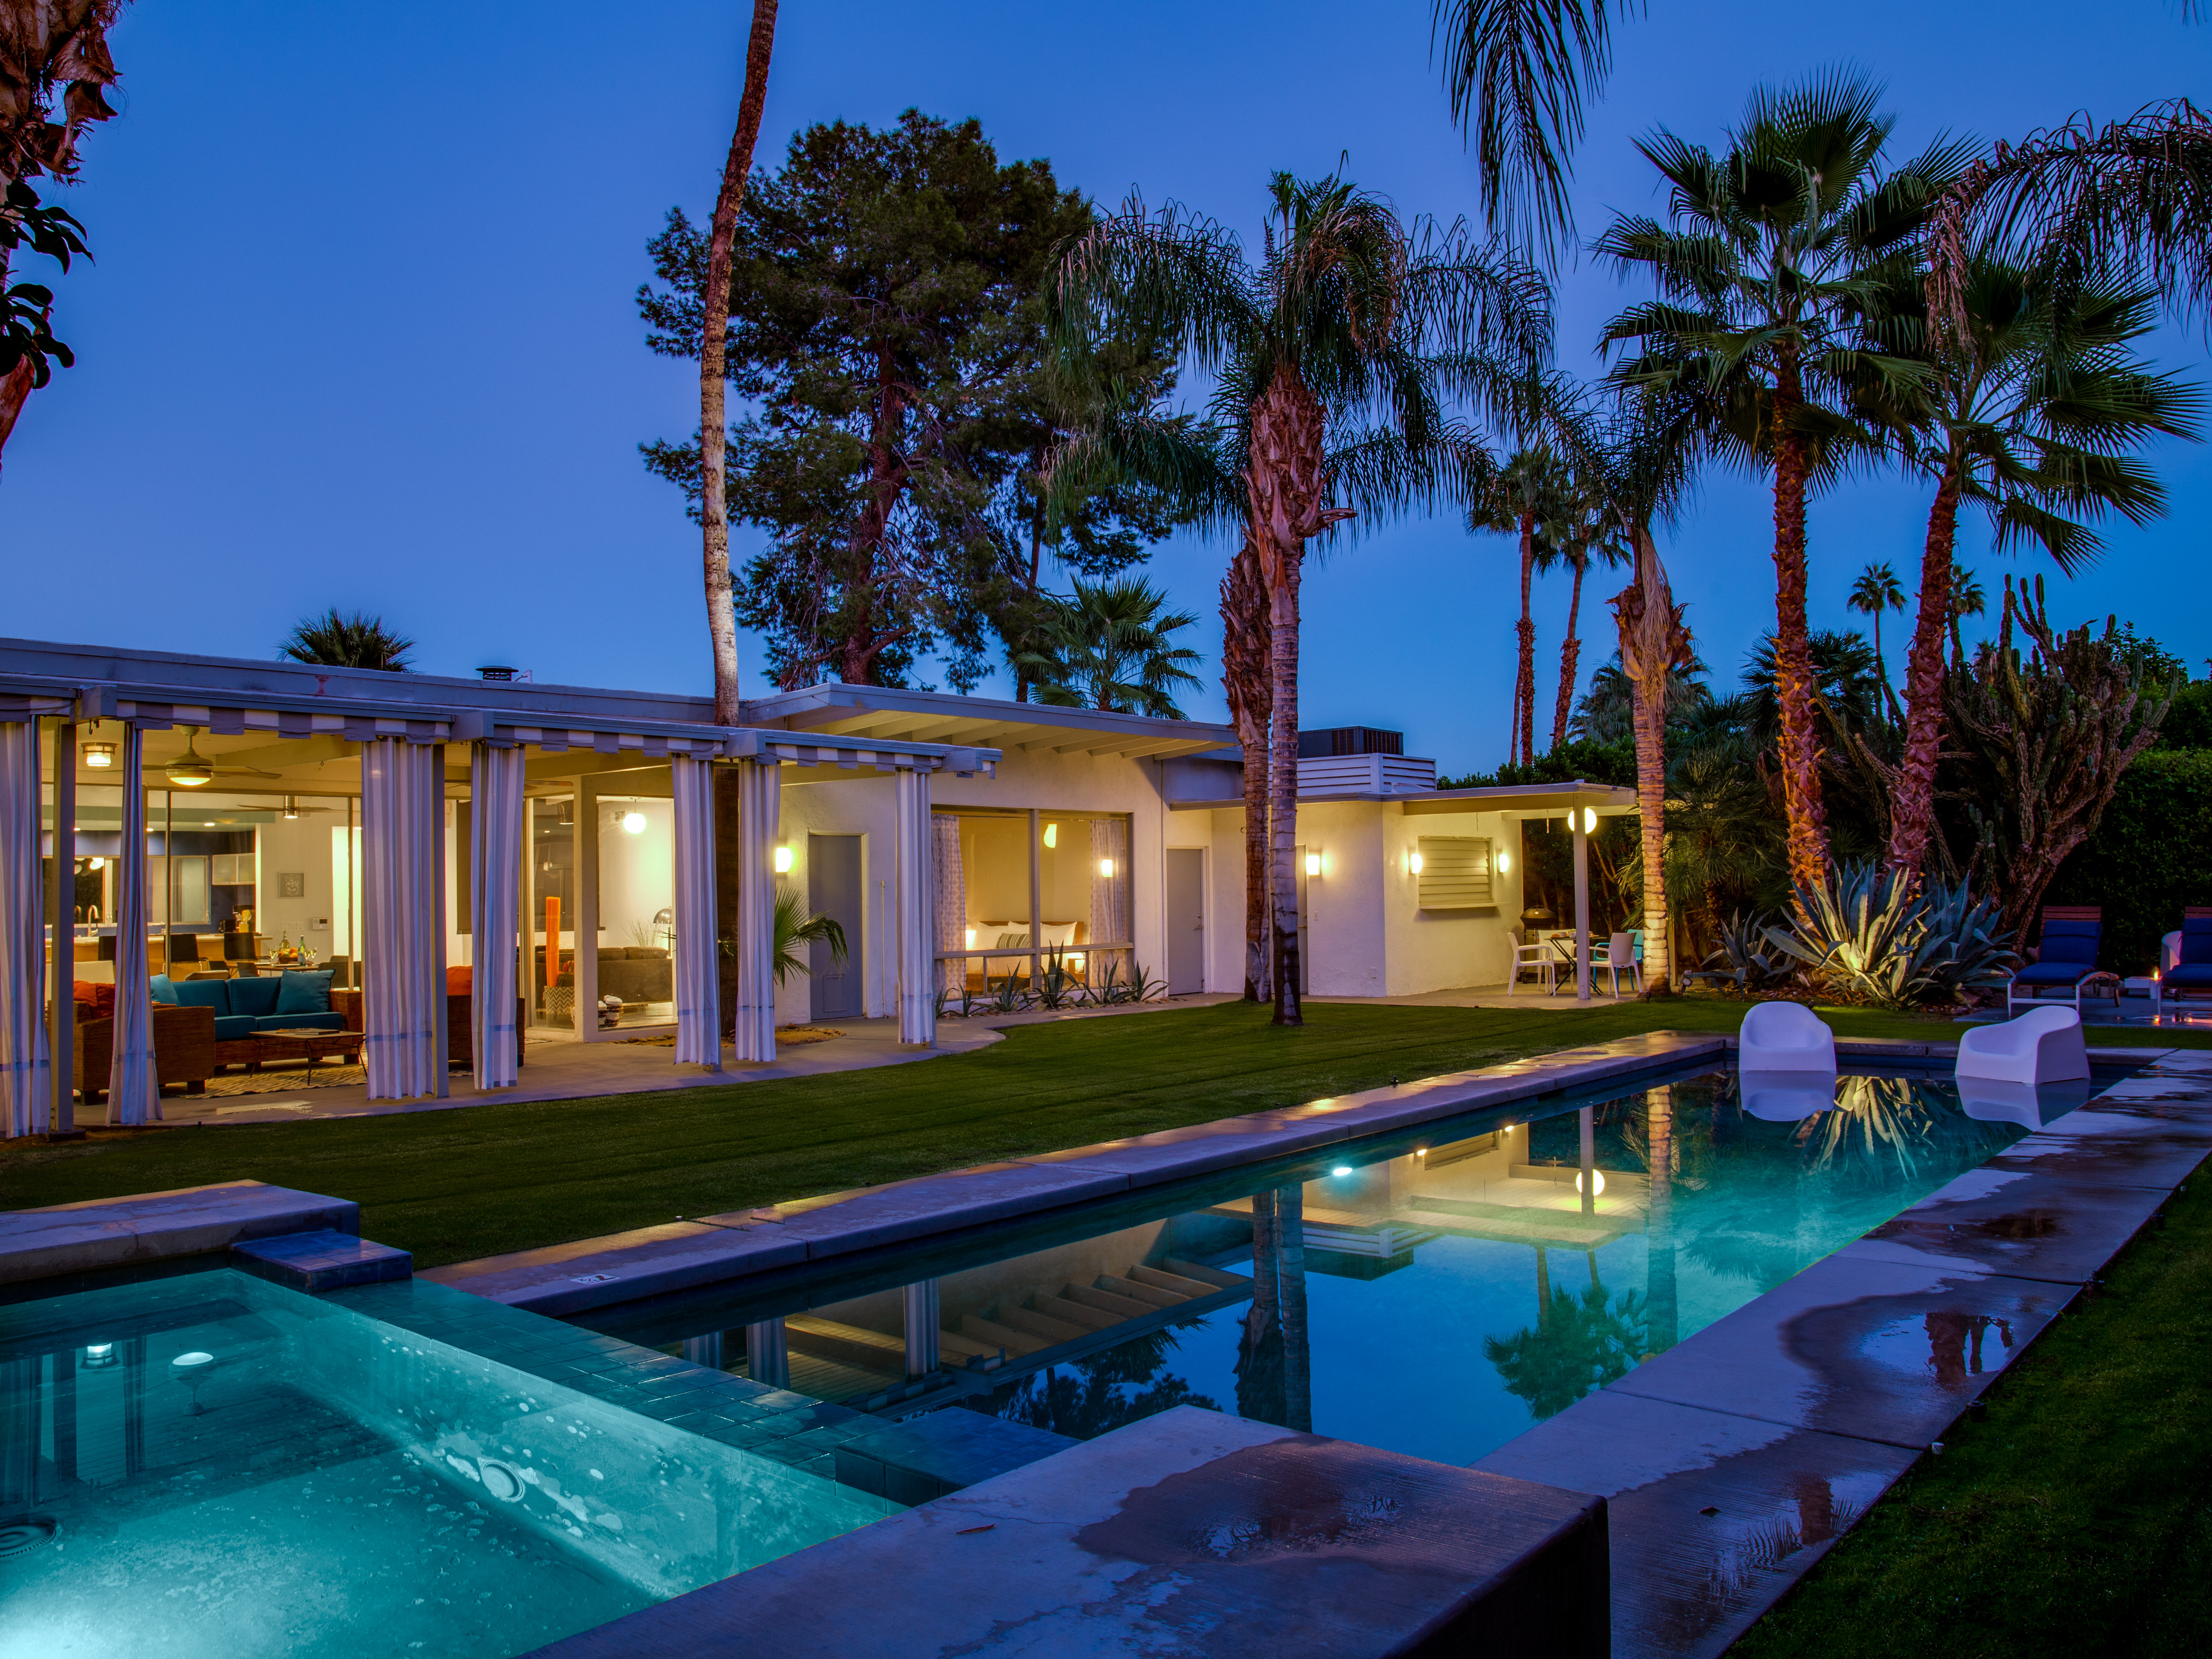 Lost Oasis - Palm Springs Vacation Home Rental